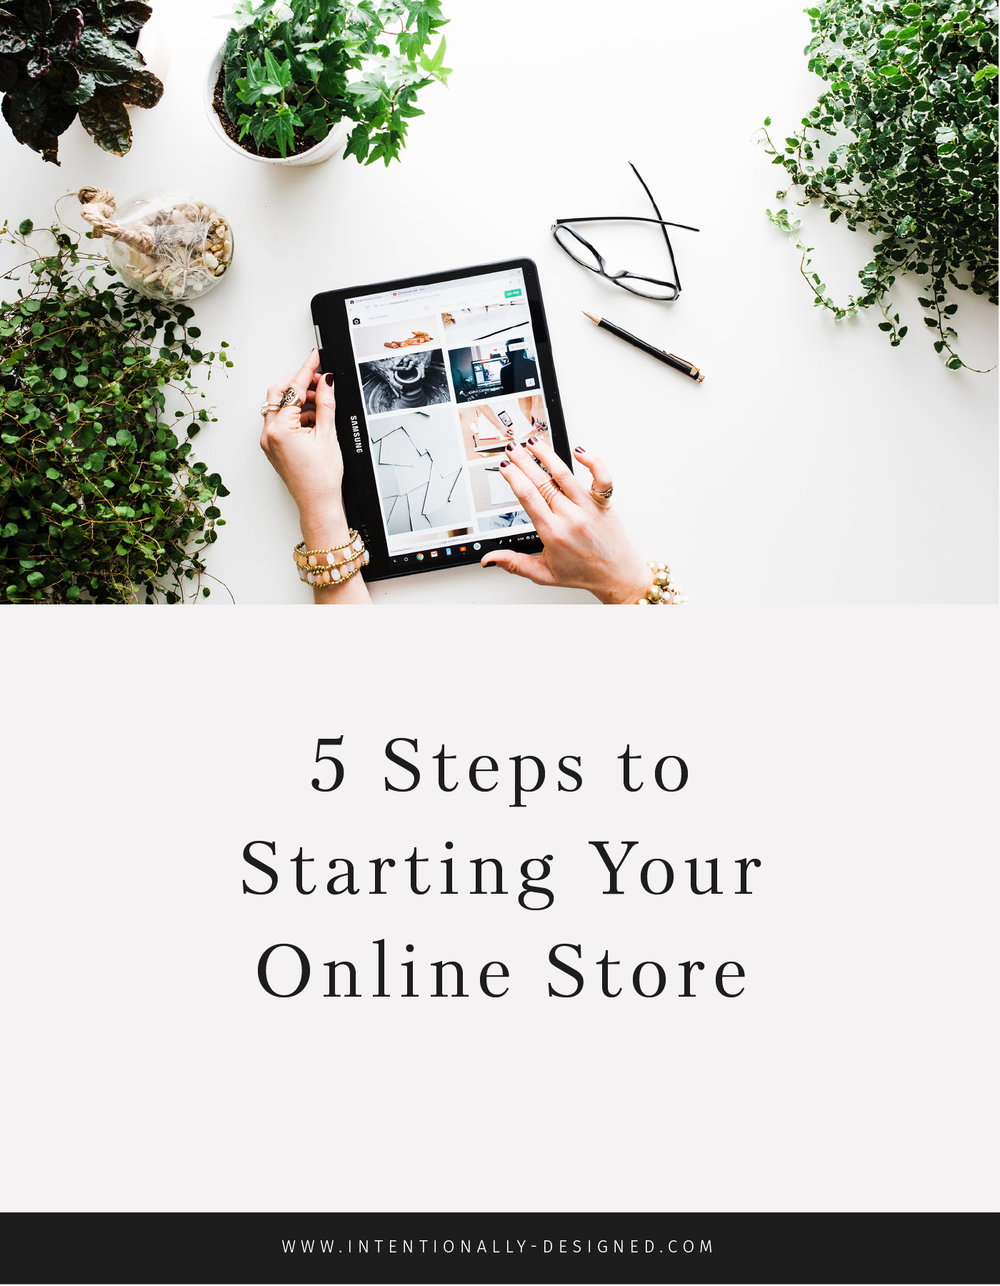 5 Steps to Starting Your Online Store